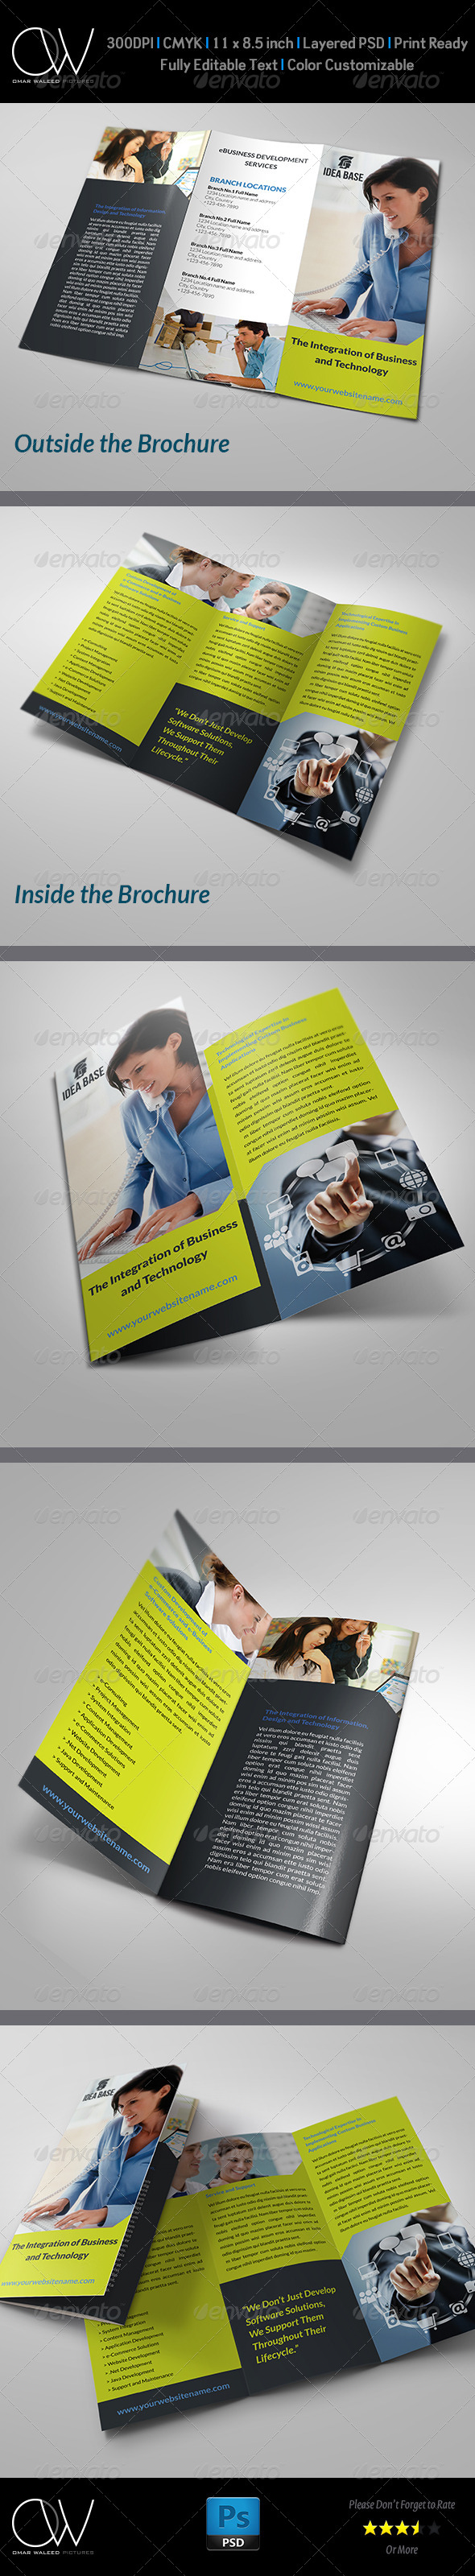 GraphicRiver Technology Business Tri-Fold Brochure 5177166